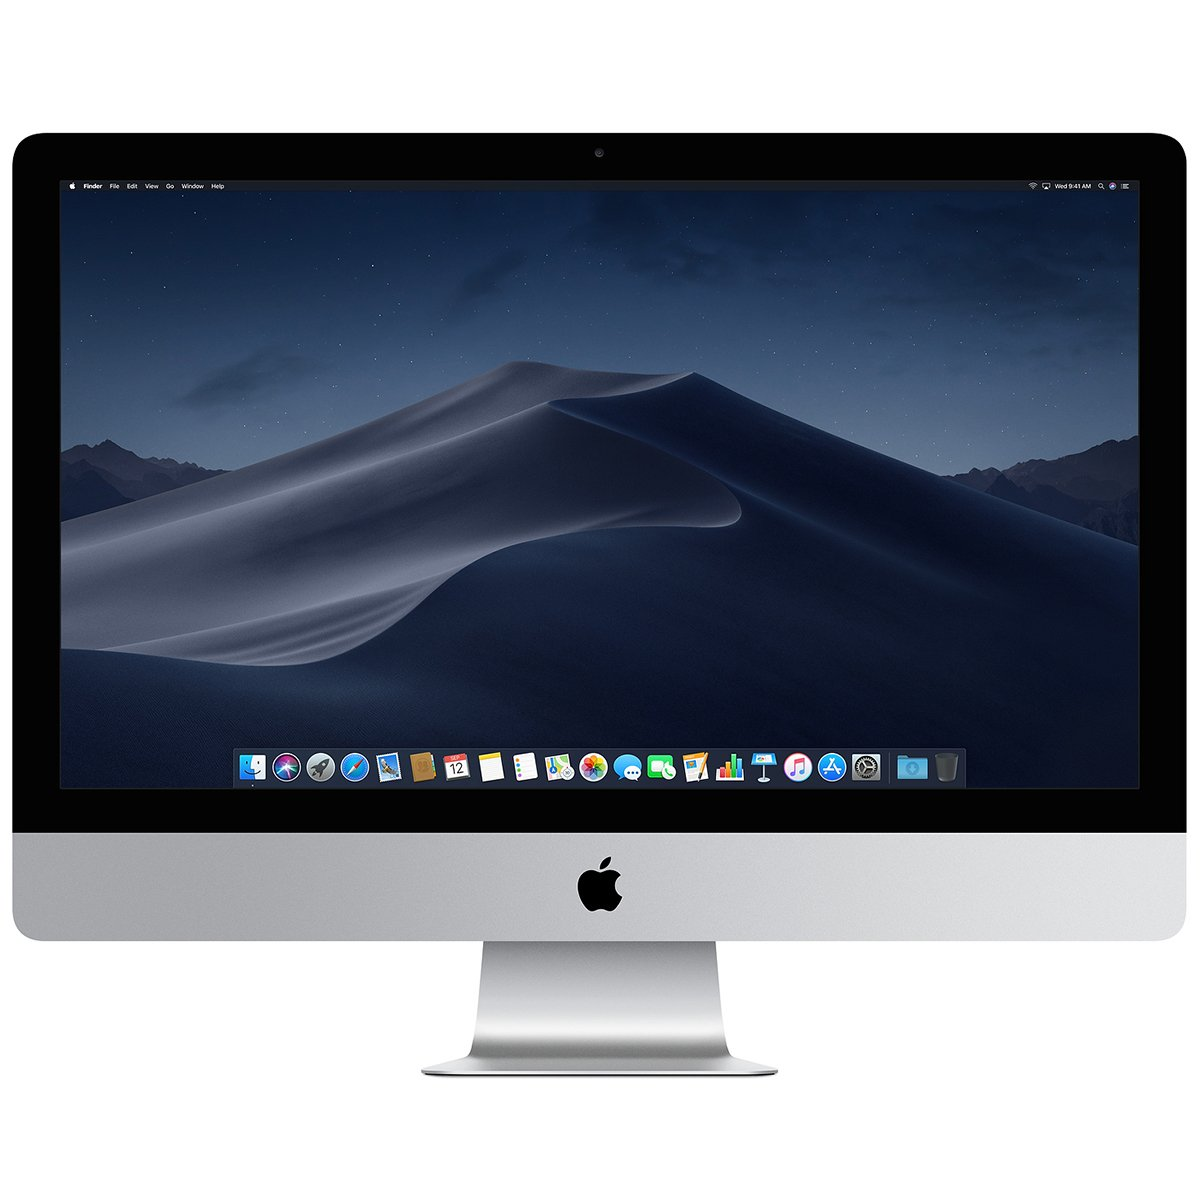 Apple IMAC 27* 3.0GHz 6-core Intel Core i5, Turbo Boost up to 4.1GHz/8GB/1 TB Fusion Drive